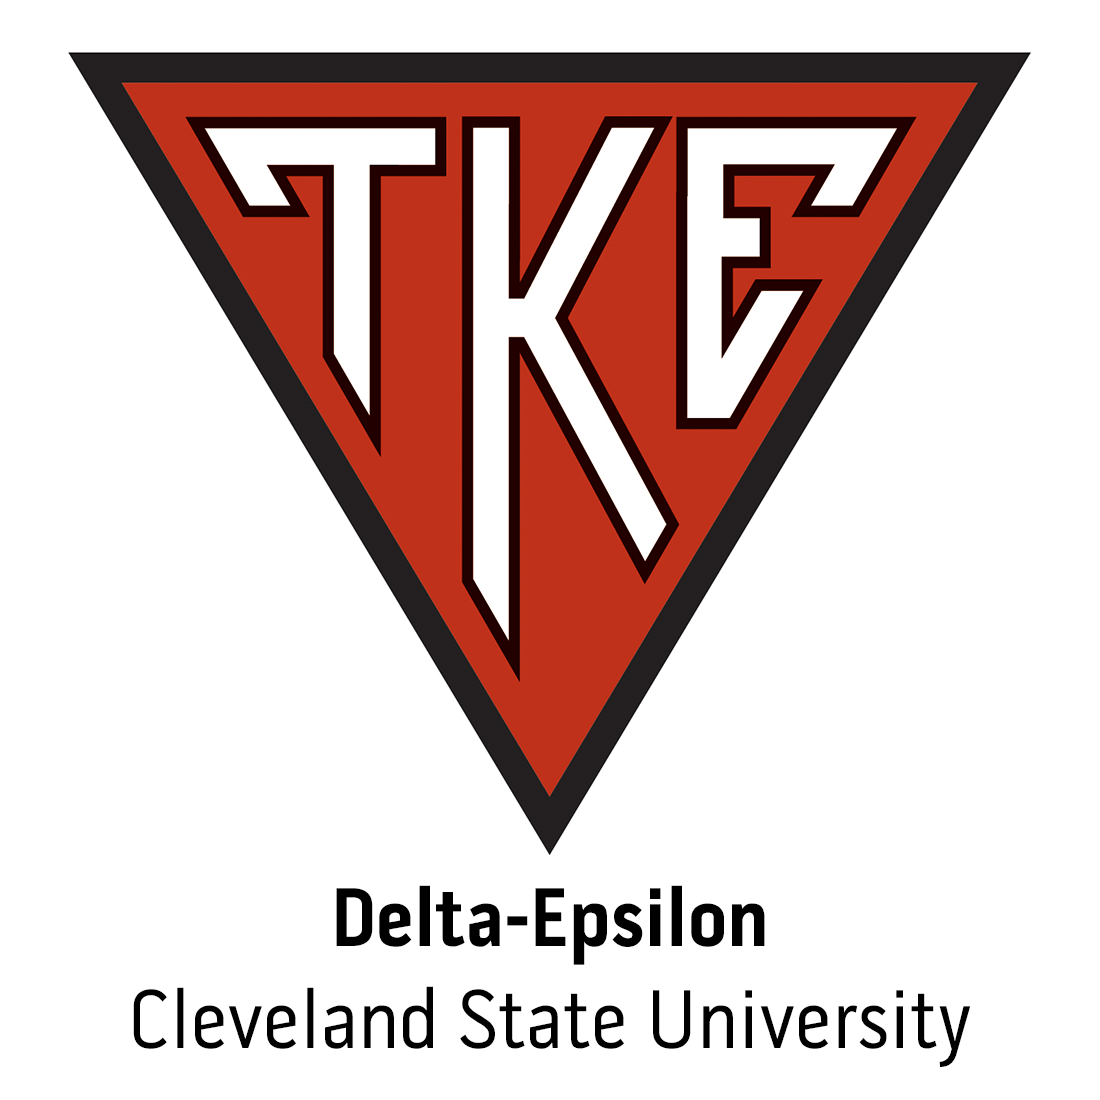 Delta-Epsilon Chapter at Cleveland State University